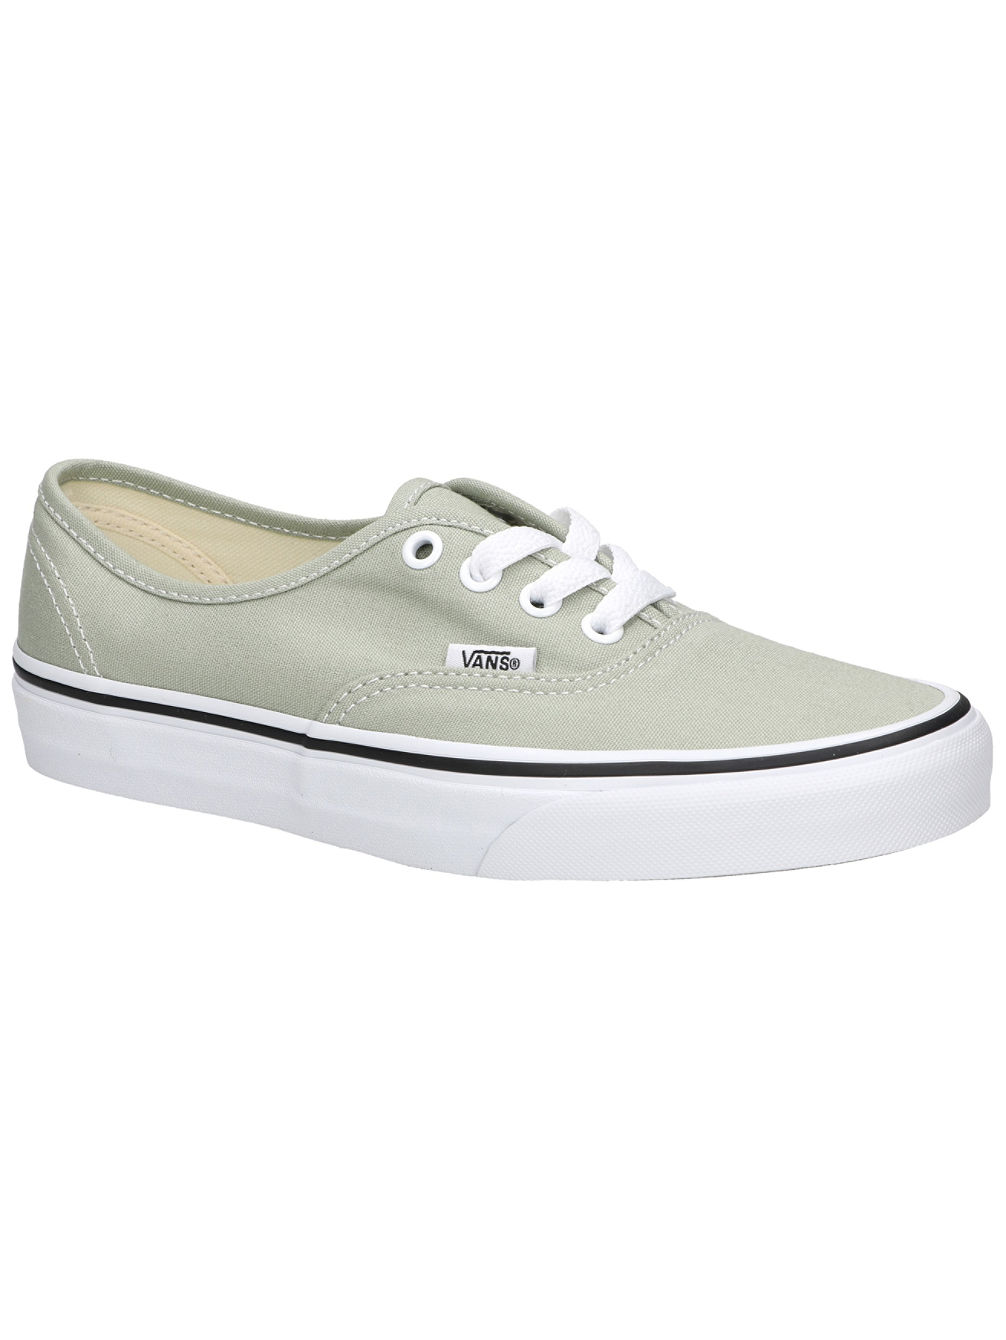 41f6dea842 Buy Vans Authentic Sneakers online at Blue Tomato